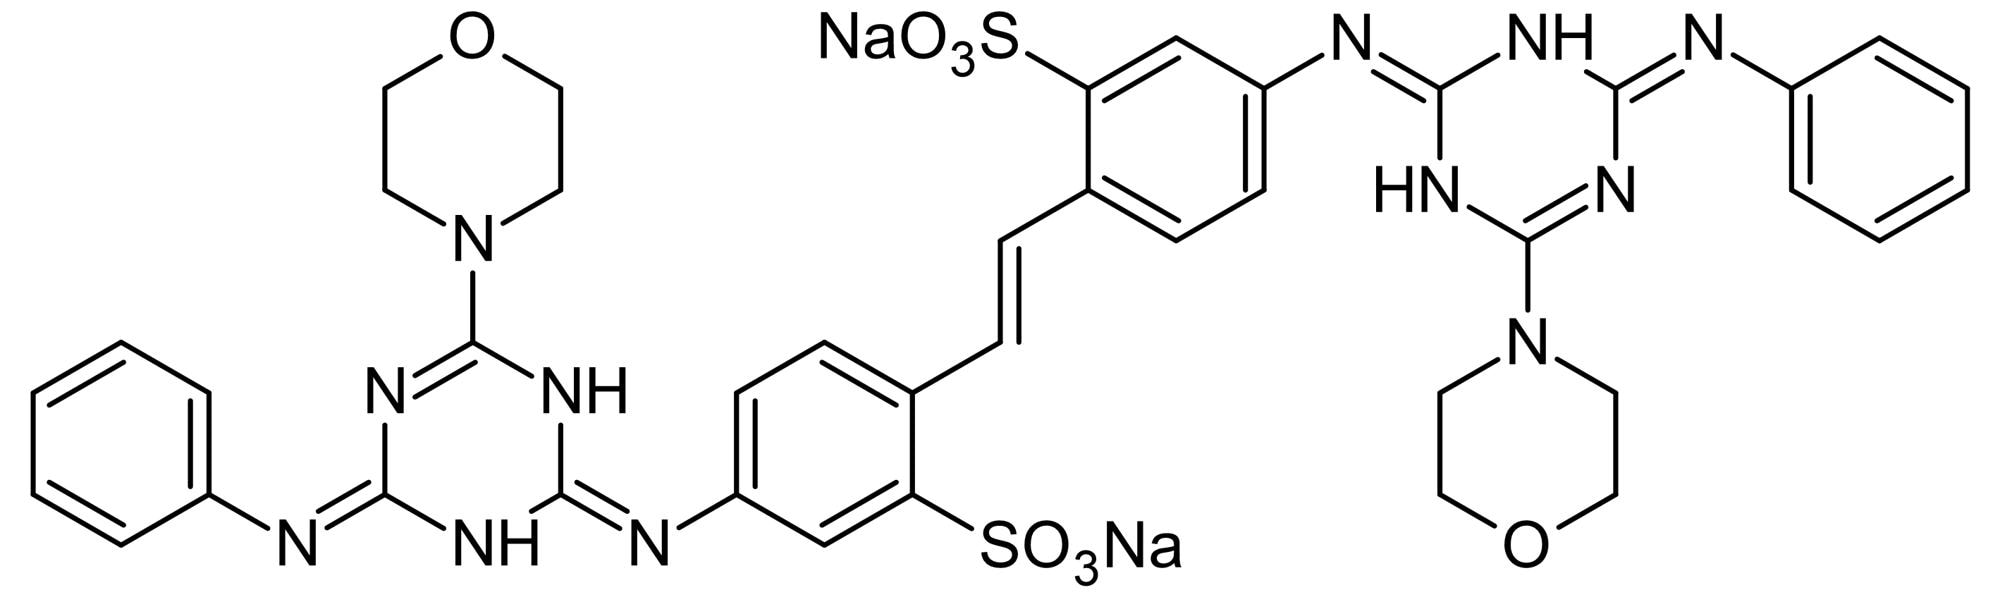 Chemical Structure - Fluorescent brightener 71, insecticides activity enhancer (ab145104)